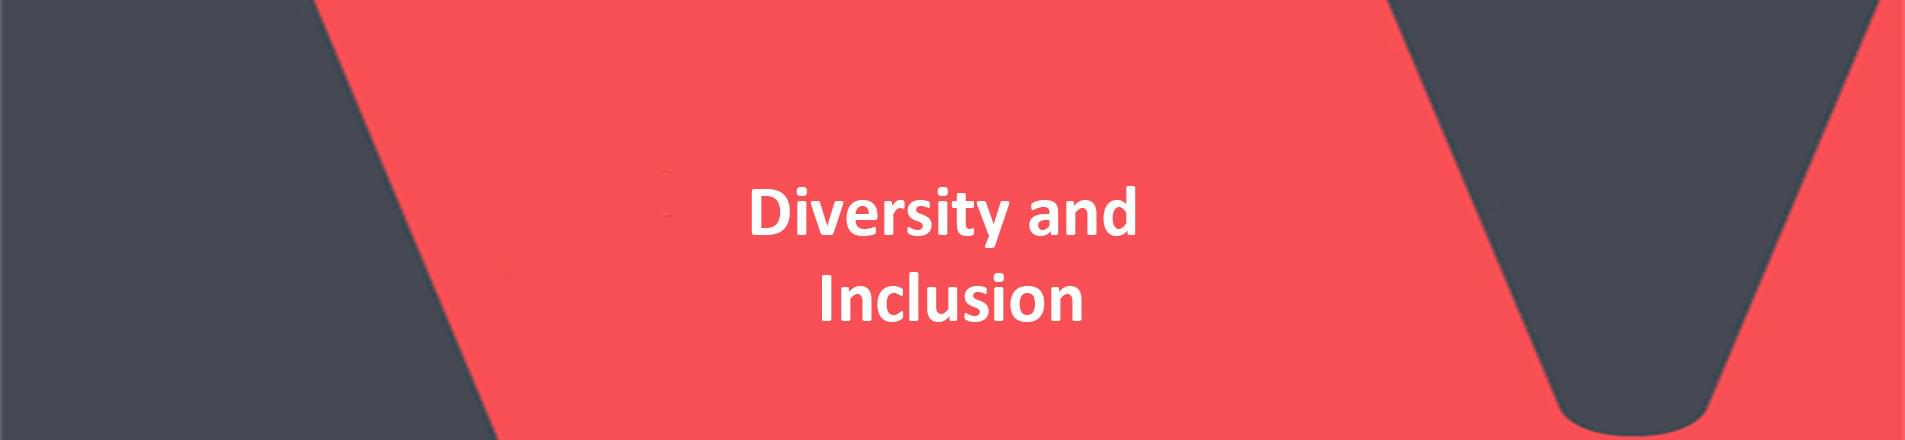 The title 'Diversity and Inclusion' on VERCIDA red background.